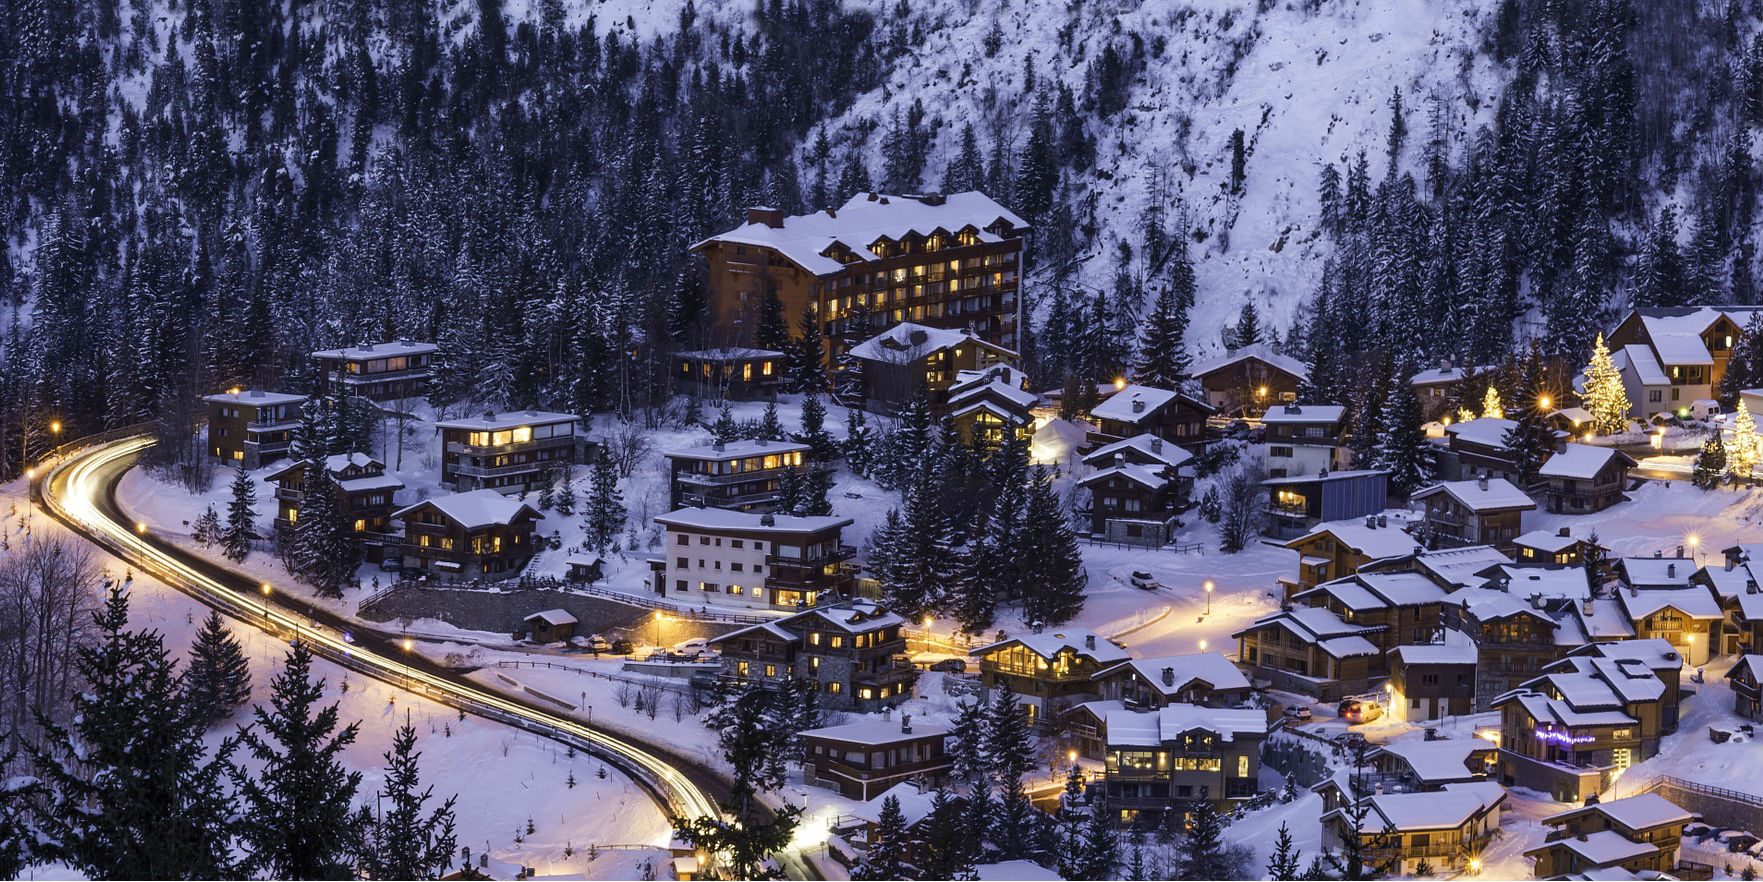 Courchevel, a Paradise of Chalets In The French Alps Courchevel, a Paradise of Chalets In The French Alps Romance in Courchevel France